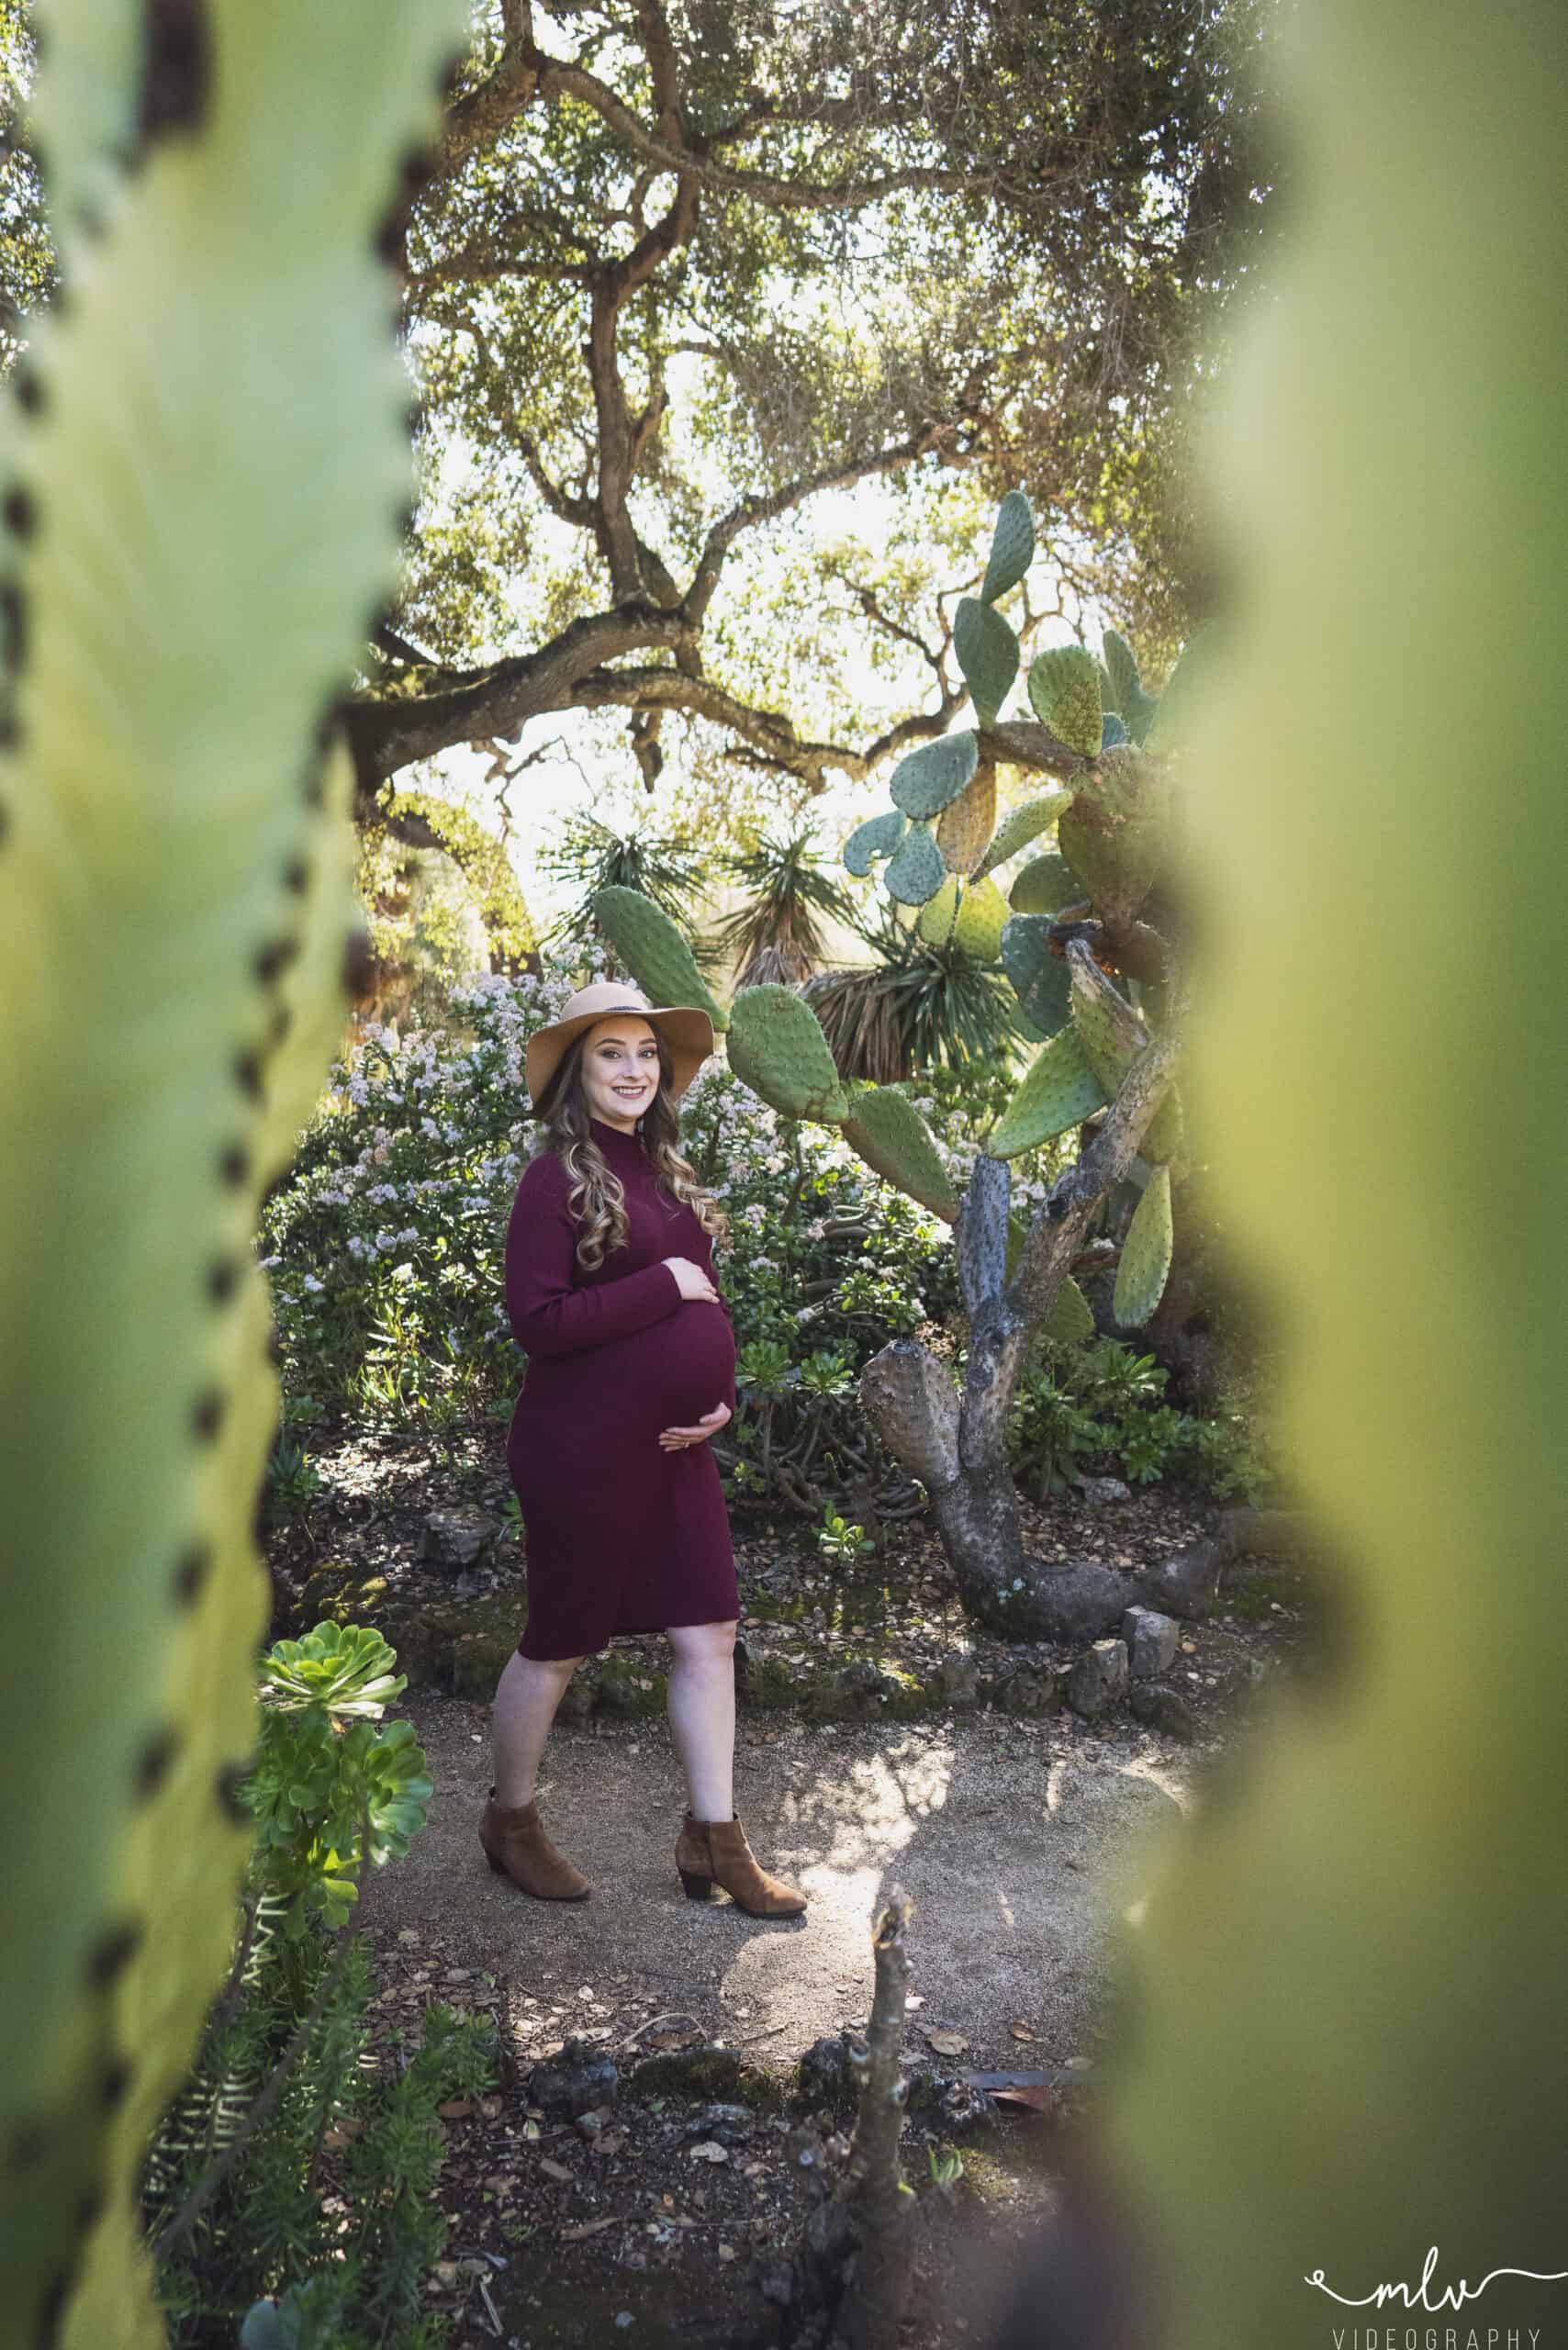 Maternity photography at Arizona Cactus Garden in Stanford University Campus